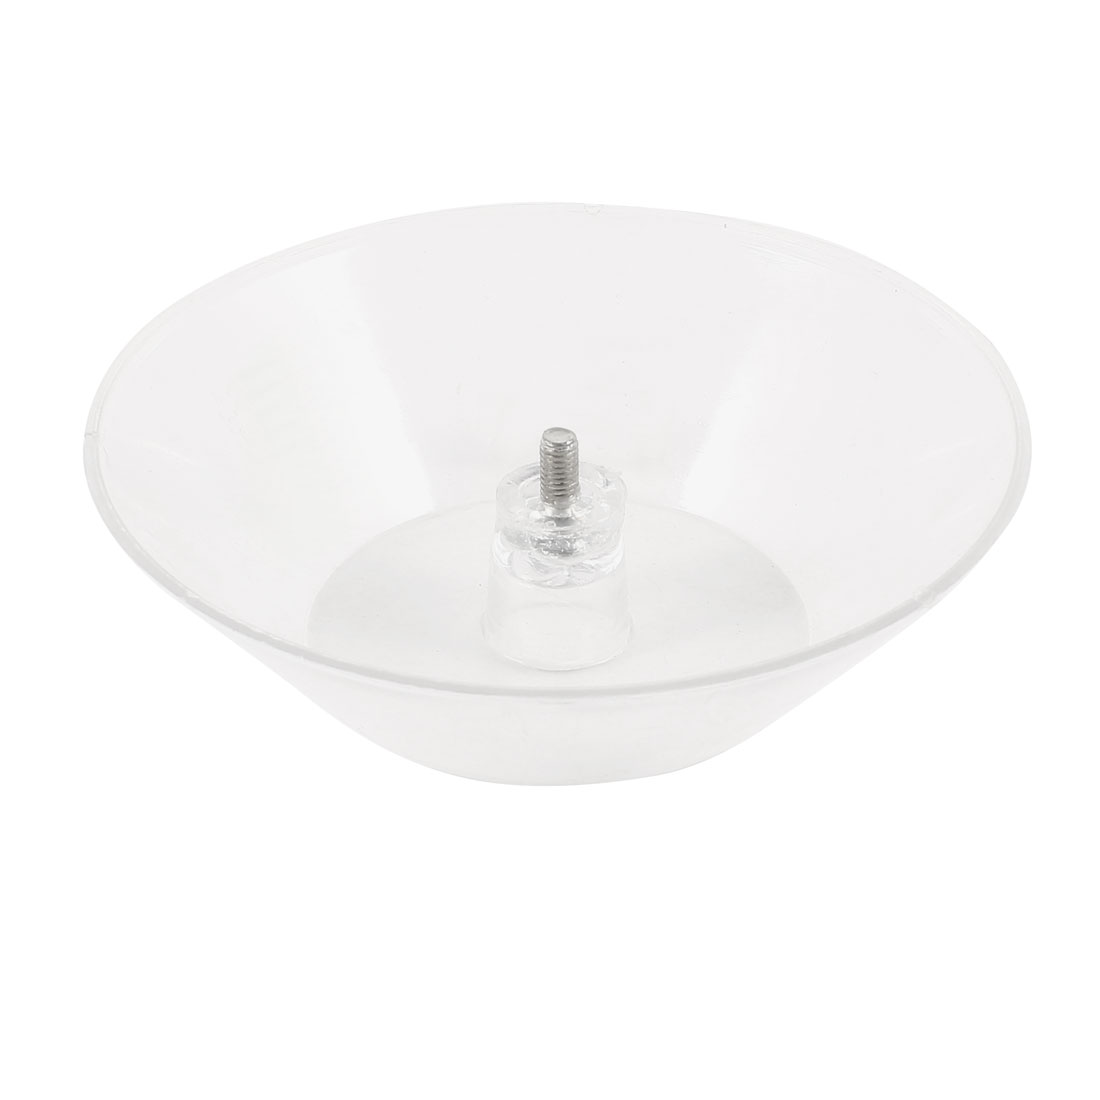 "Range Hoods 3/16"" Threaded Screwed Tempered Clear Plastic Oil Cup"